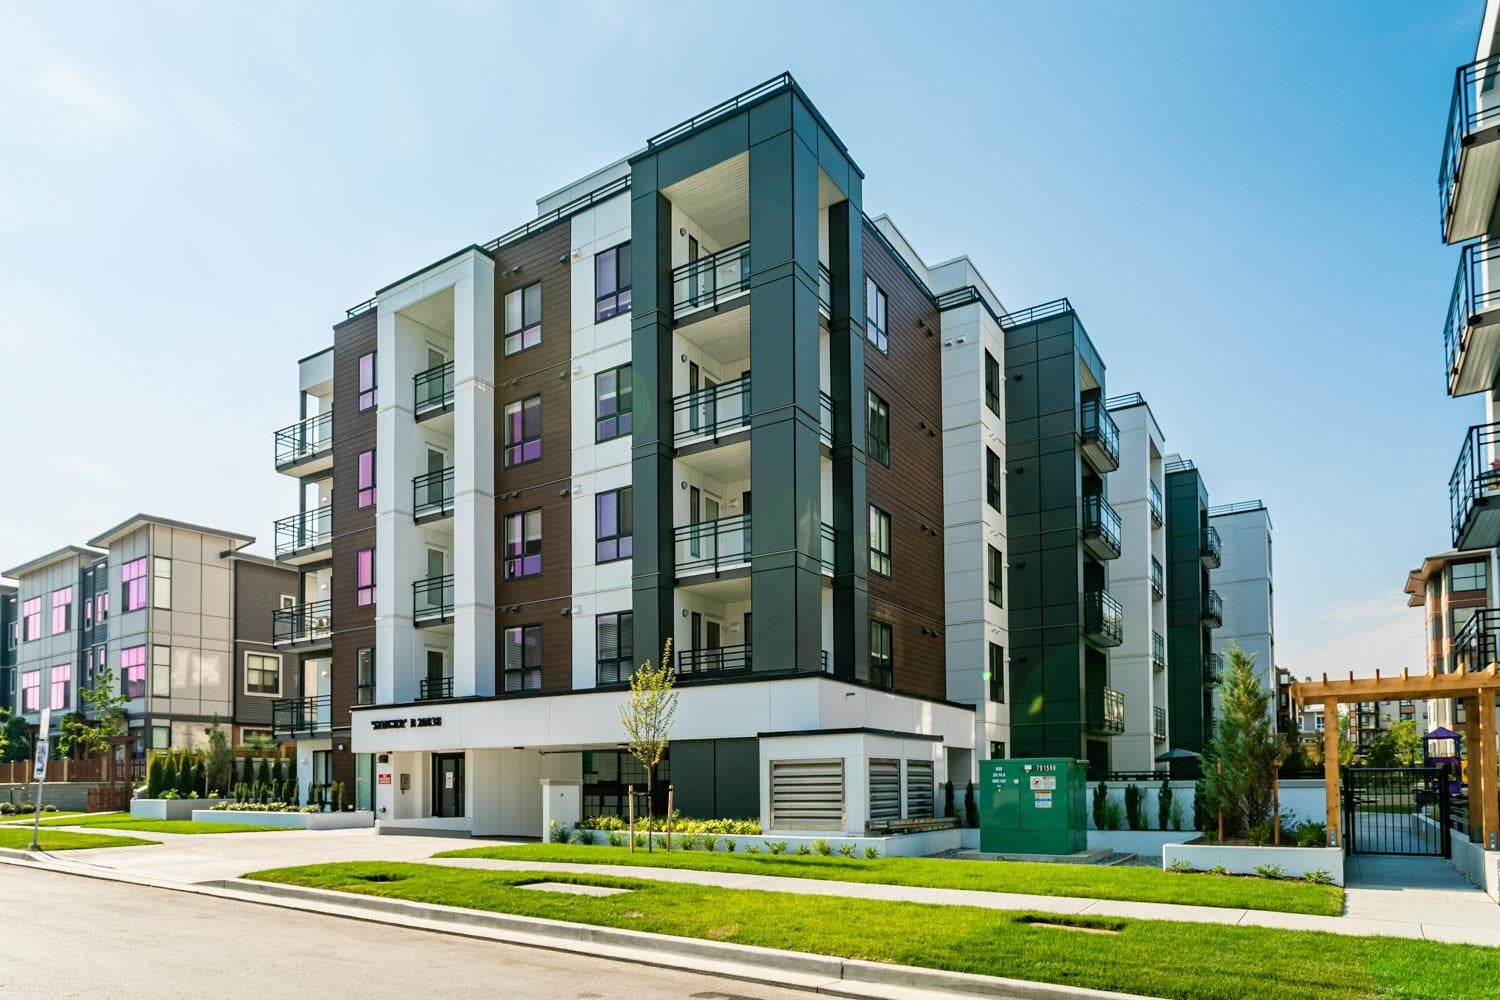 412B 20838 78B AVENUE - Willoughby Heights Apartment/Condo for sale, 2 Bedrooms (R2605965) - #1